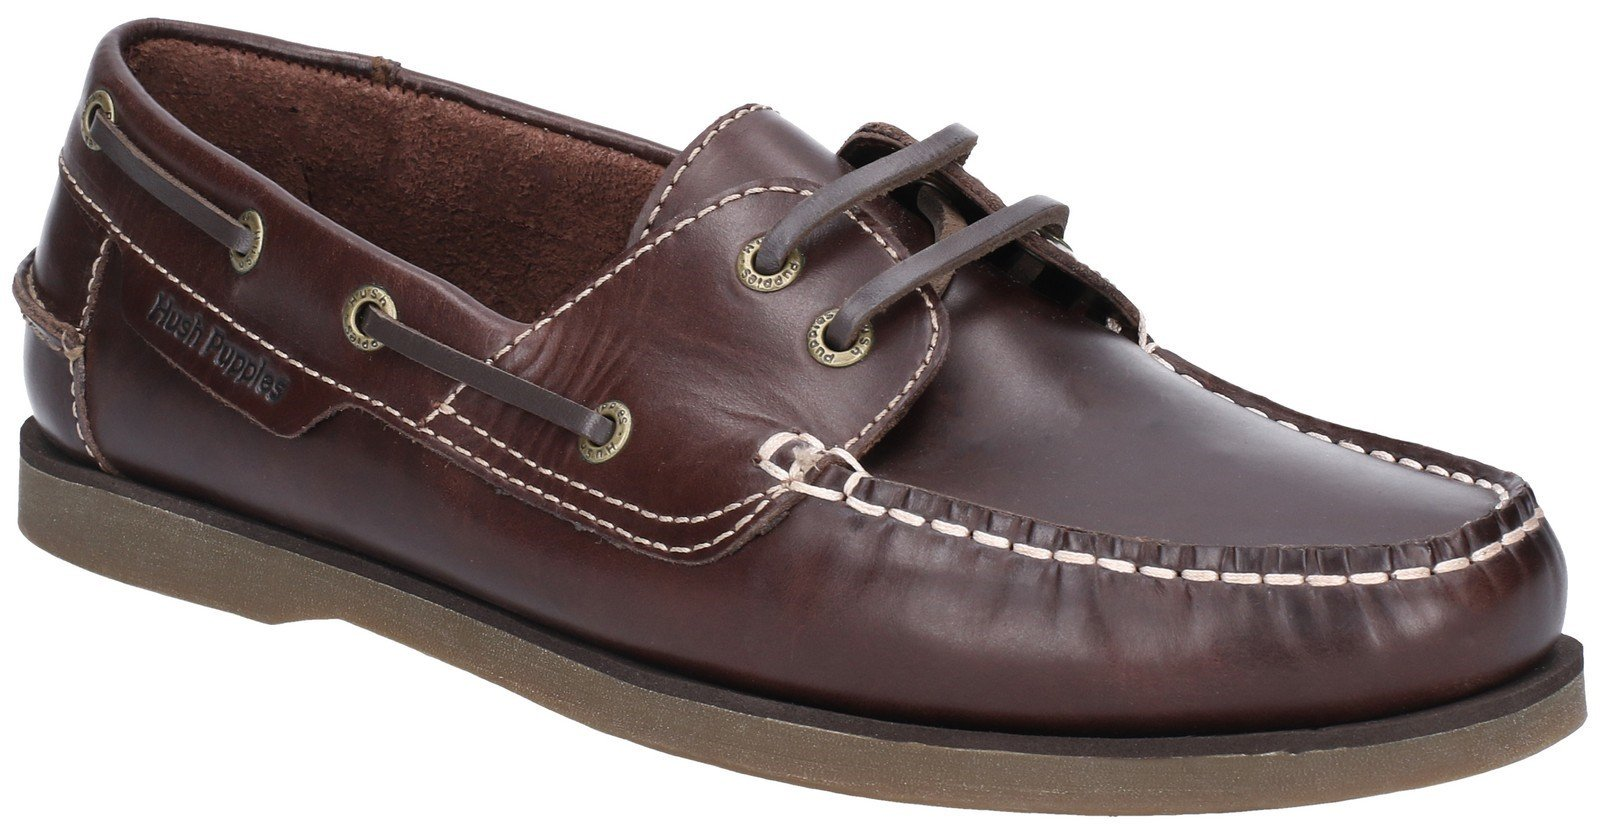 Hush Puppies Men's Henry Classic Lace Up Loafer Various Colours 28365 - Brown 6